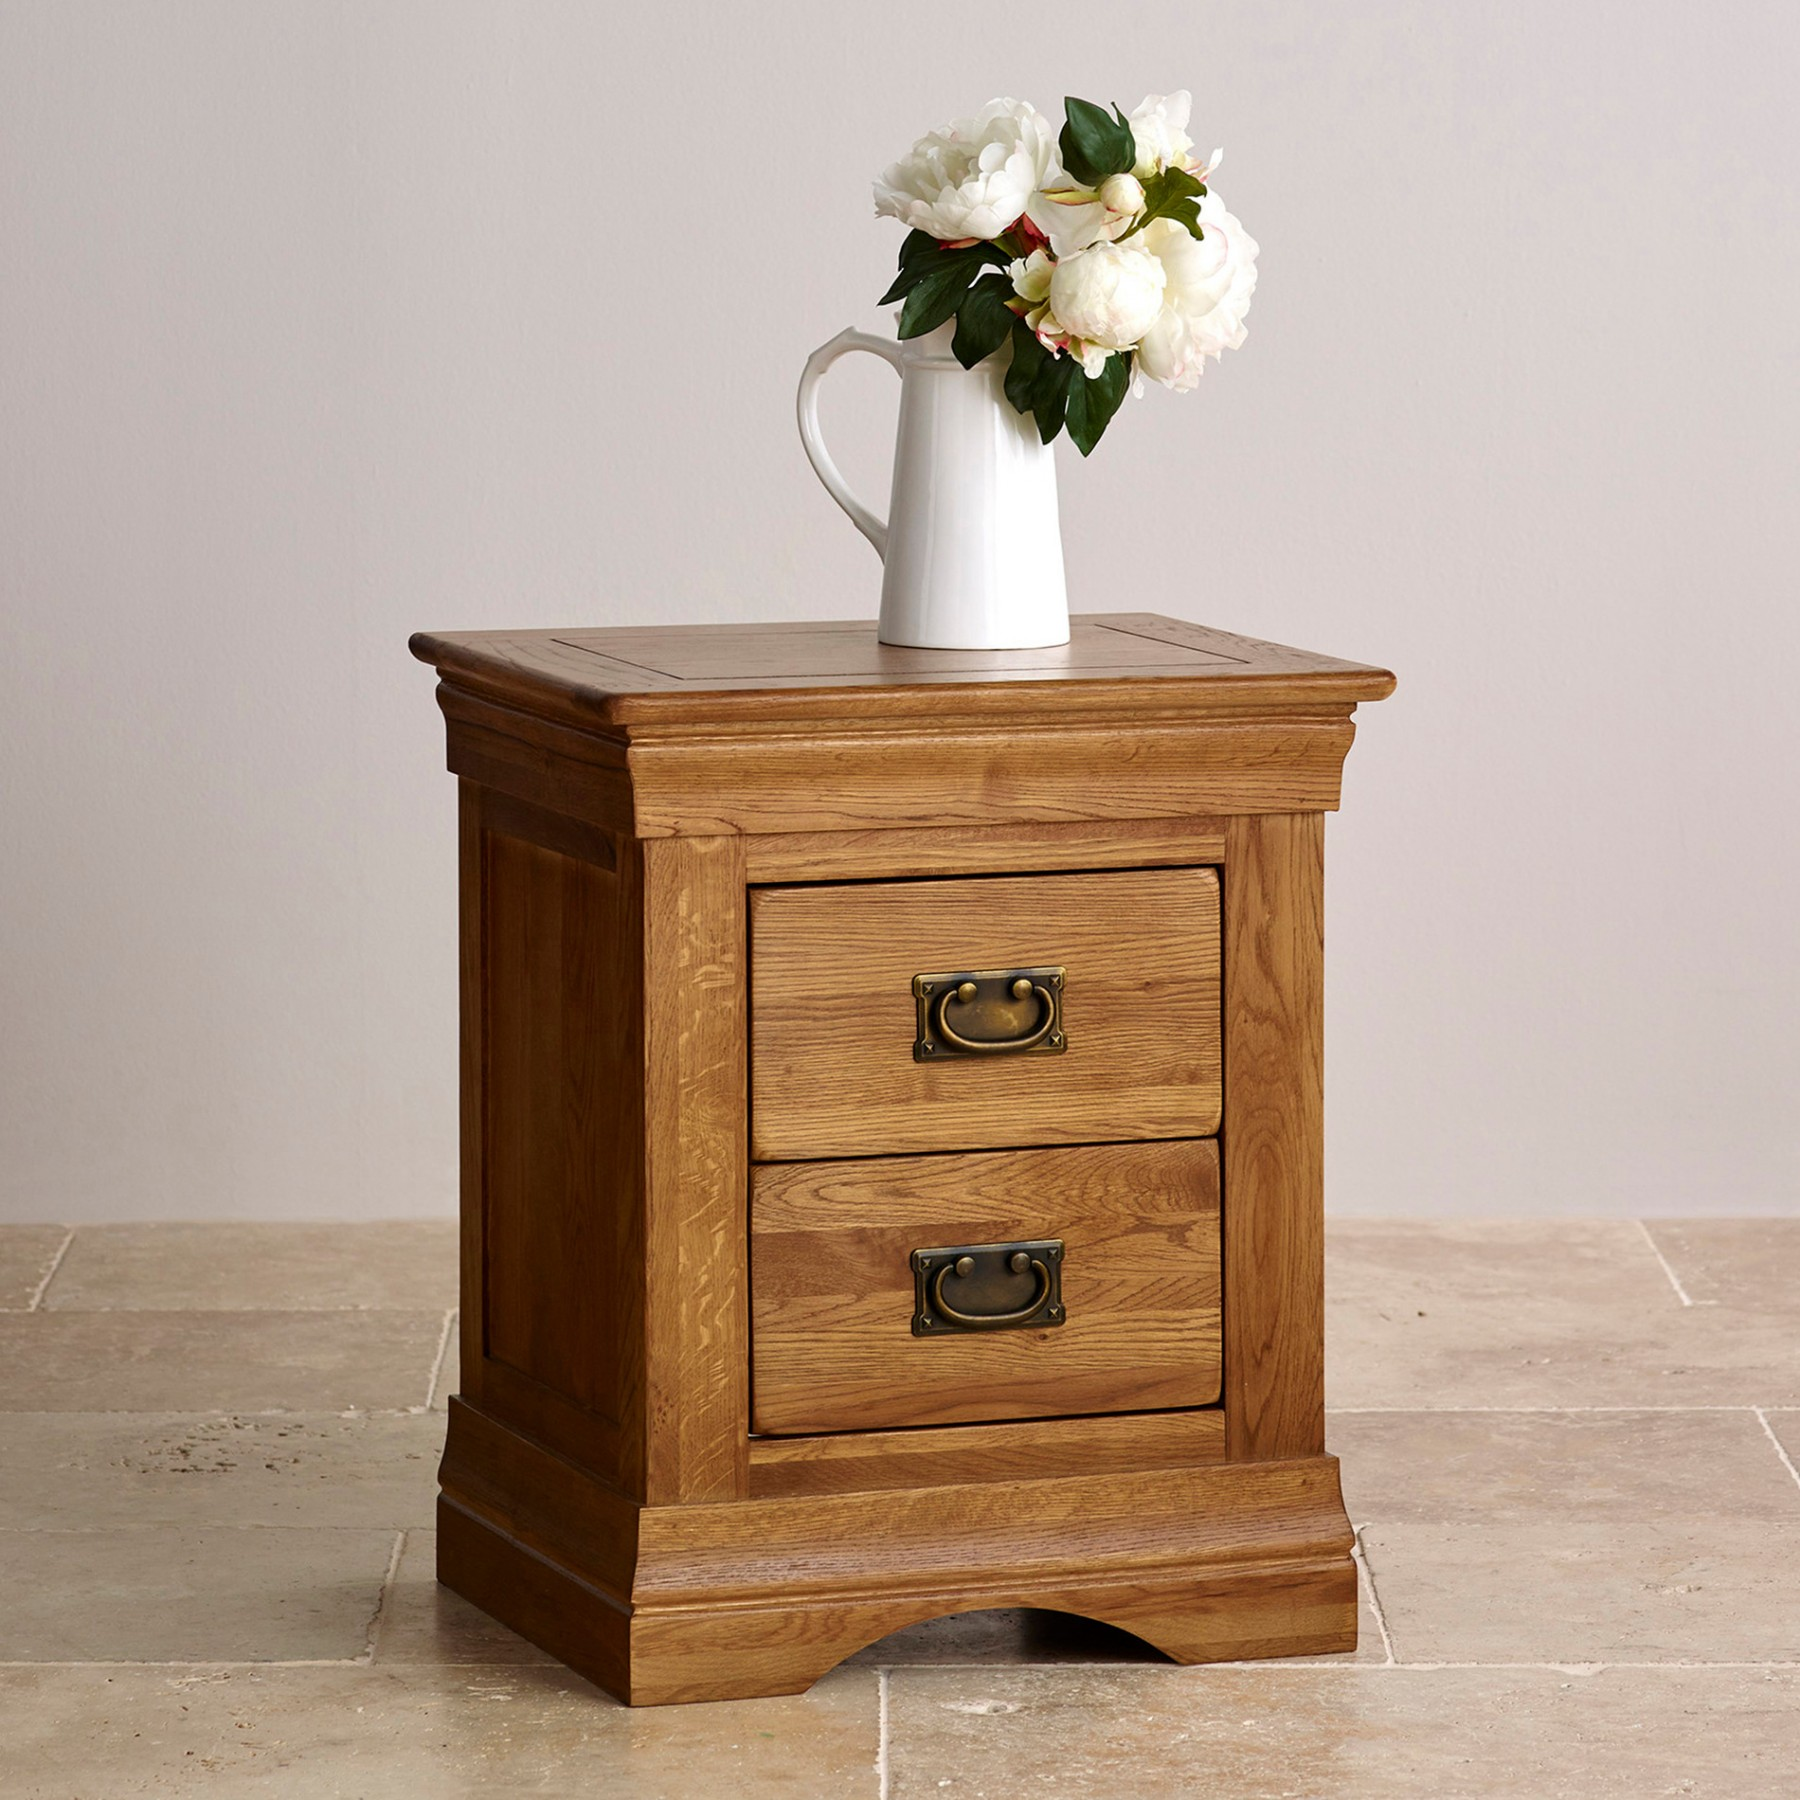 Enchanting Nightstands Walmart | Winsome Rustic Nightstand Designs